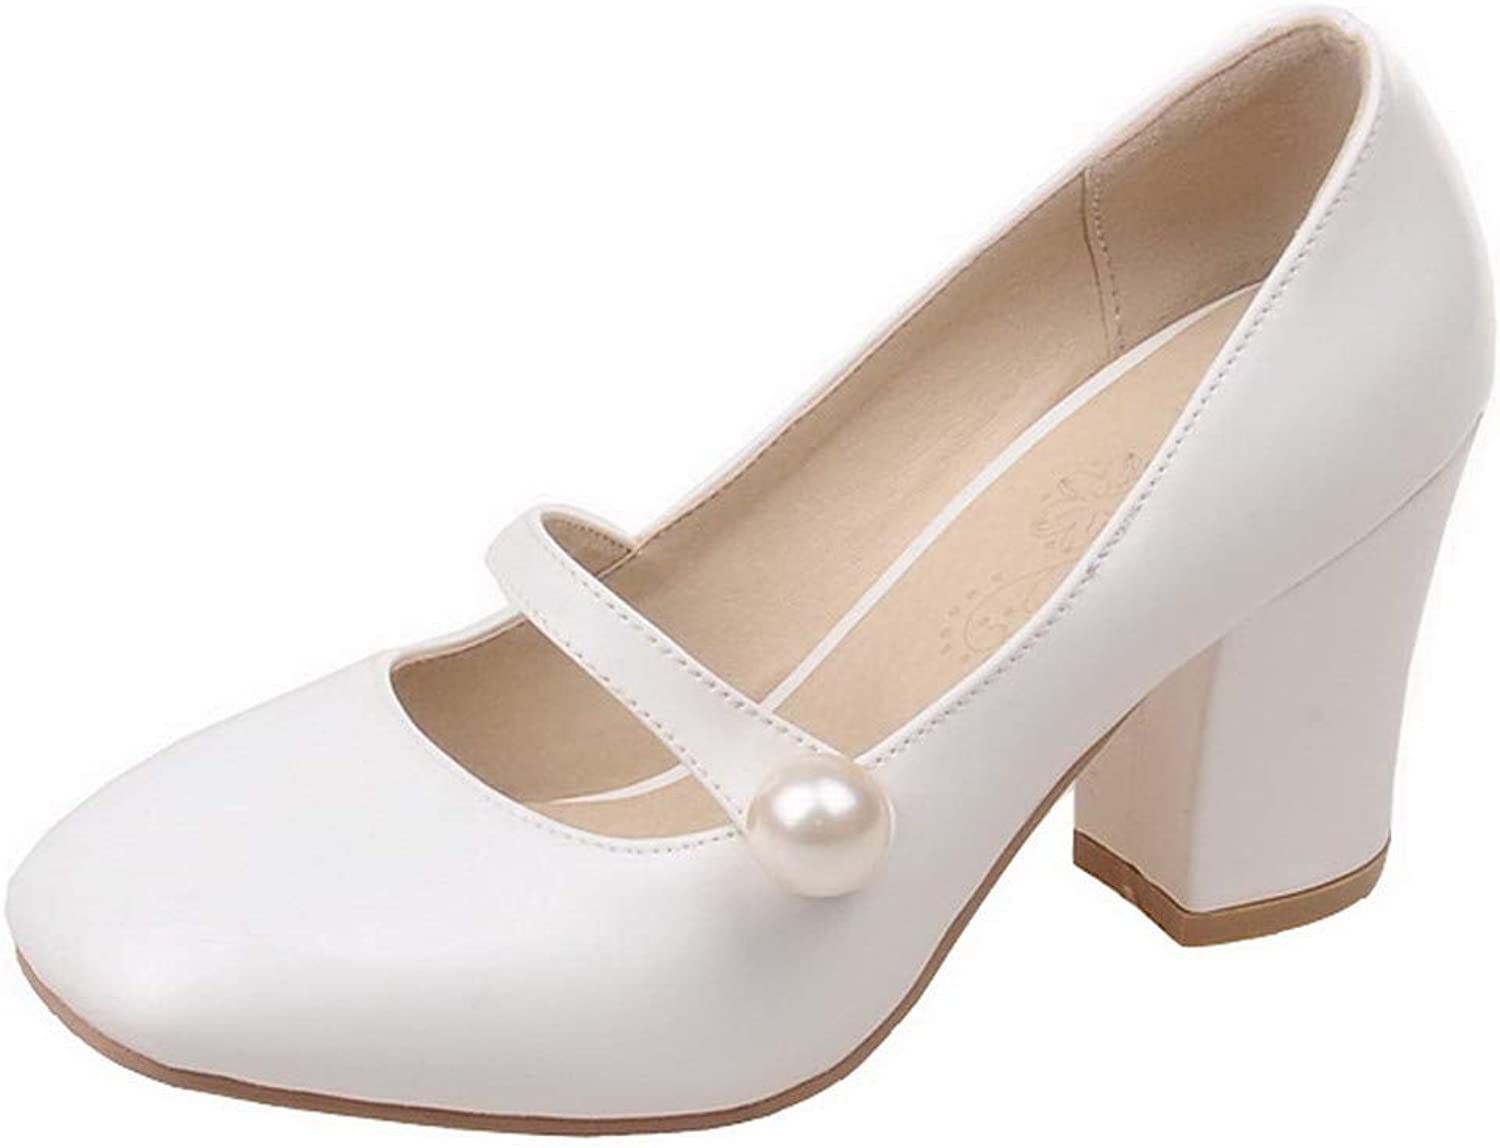 WeenFashion Women's Kitten-Heels PU Solid Pull-On Square-Toe Pumps-shoes,AMGDX007088